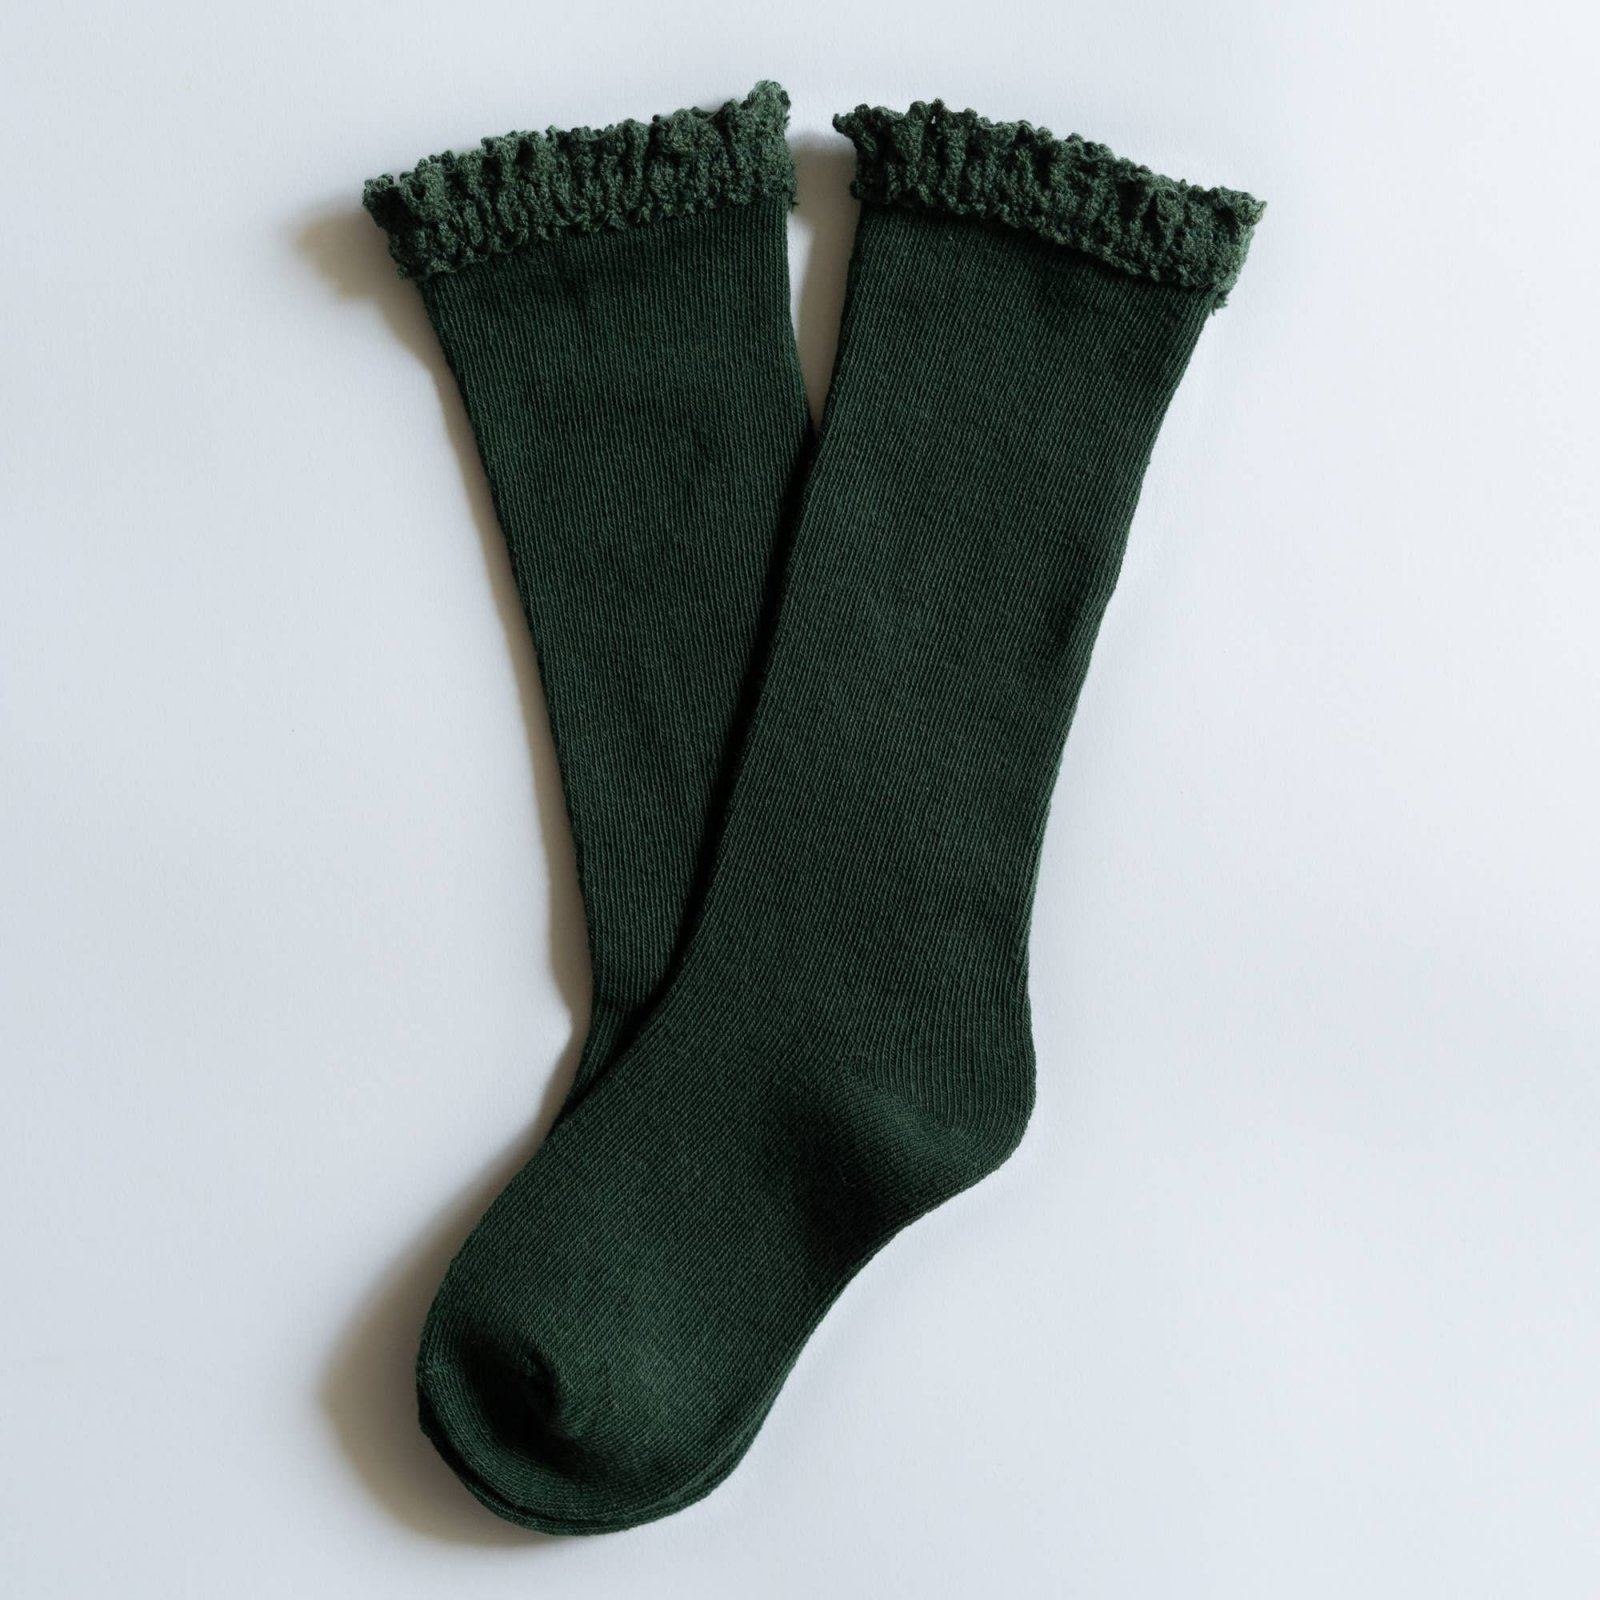 Lace Knee Highs - Forest Green by Little Stocking Co.